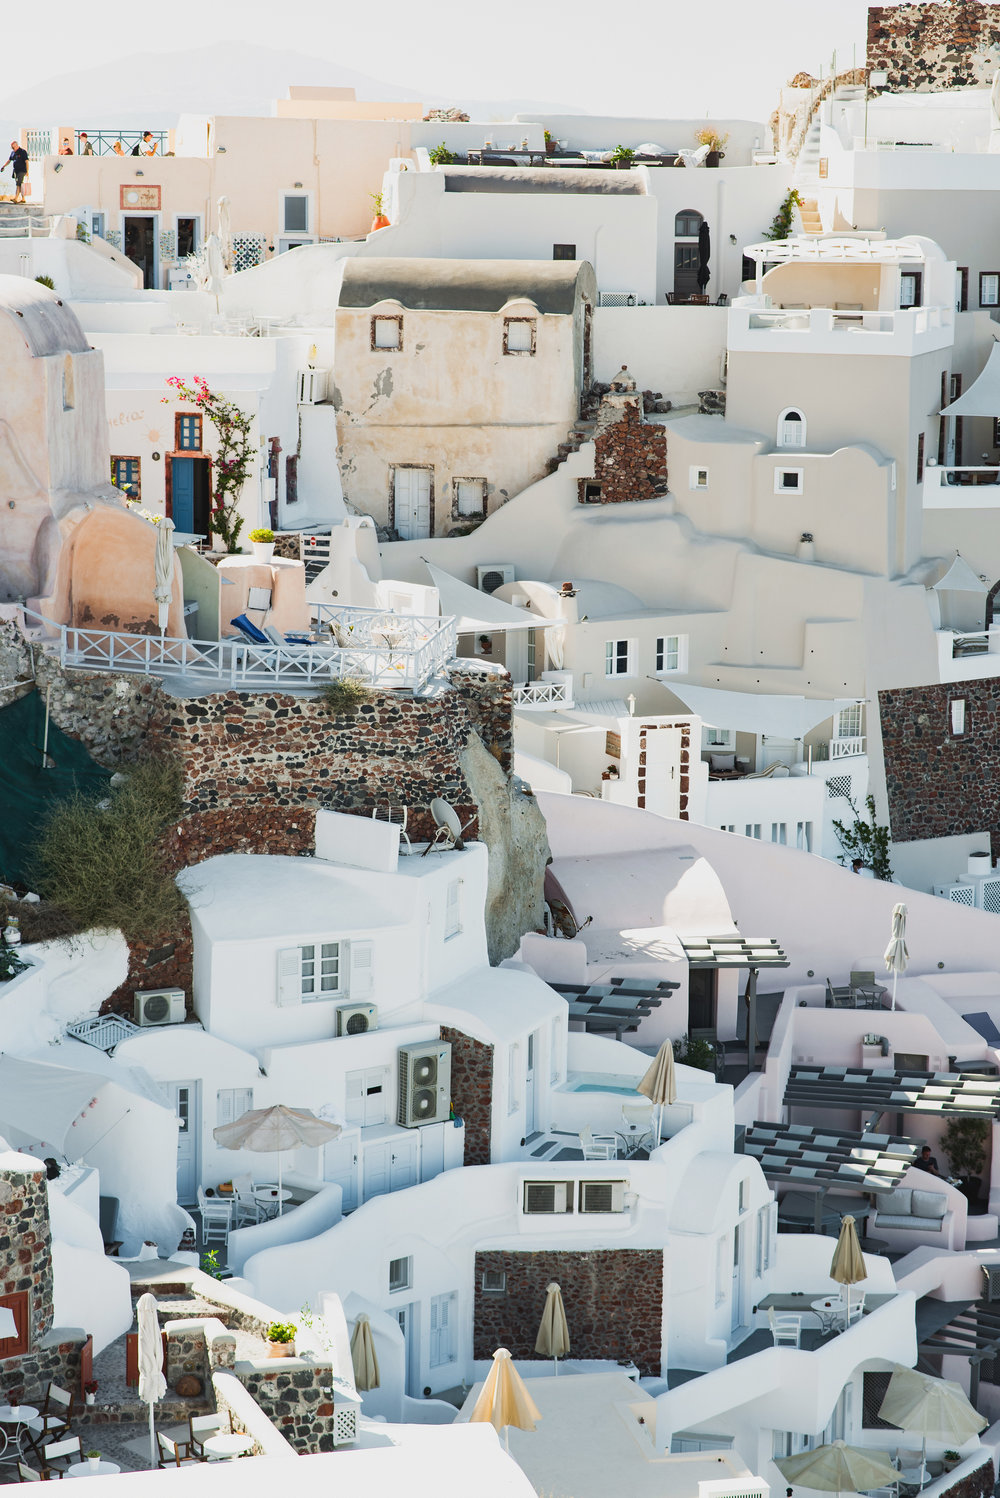 Your Guide to Santorini: What to Eat, See and Do | | Travel + Vacation Photographer | Family Vacations | Engagement Proposals | Honeymoons | Anniversary Gifts | Bachelorette Ideas | Solo Traveller Tips | Flytographer captures your travel memories - everything from surprise proposals, honeymoons, family vacations, and more.